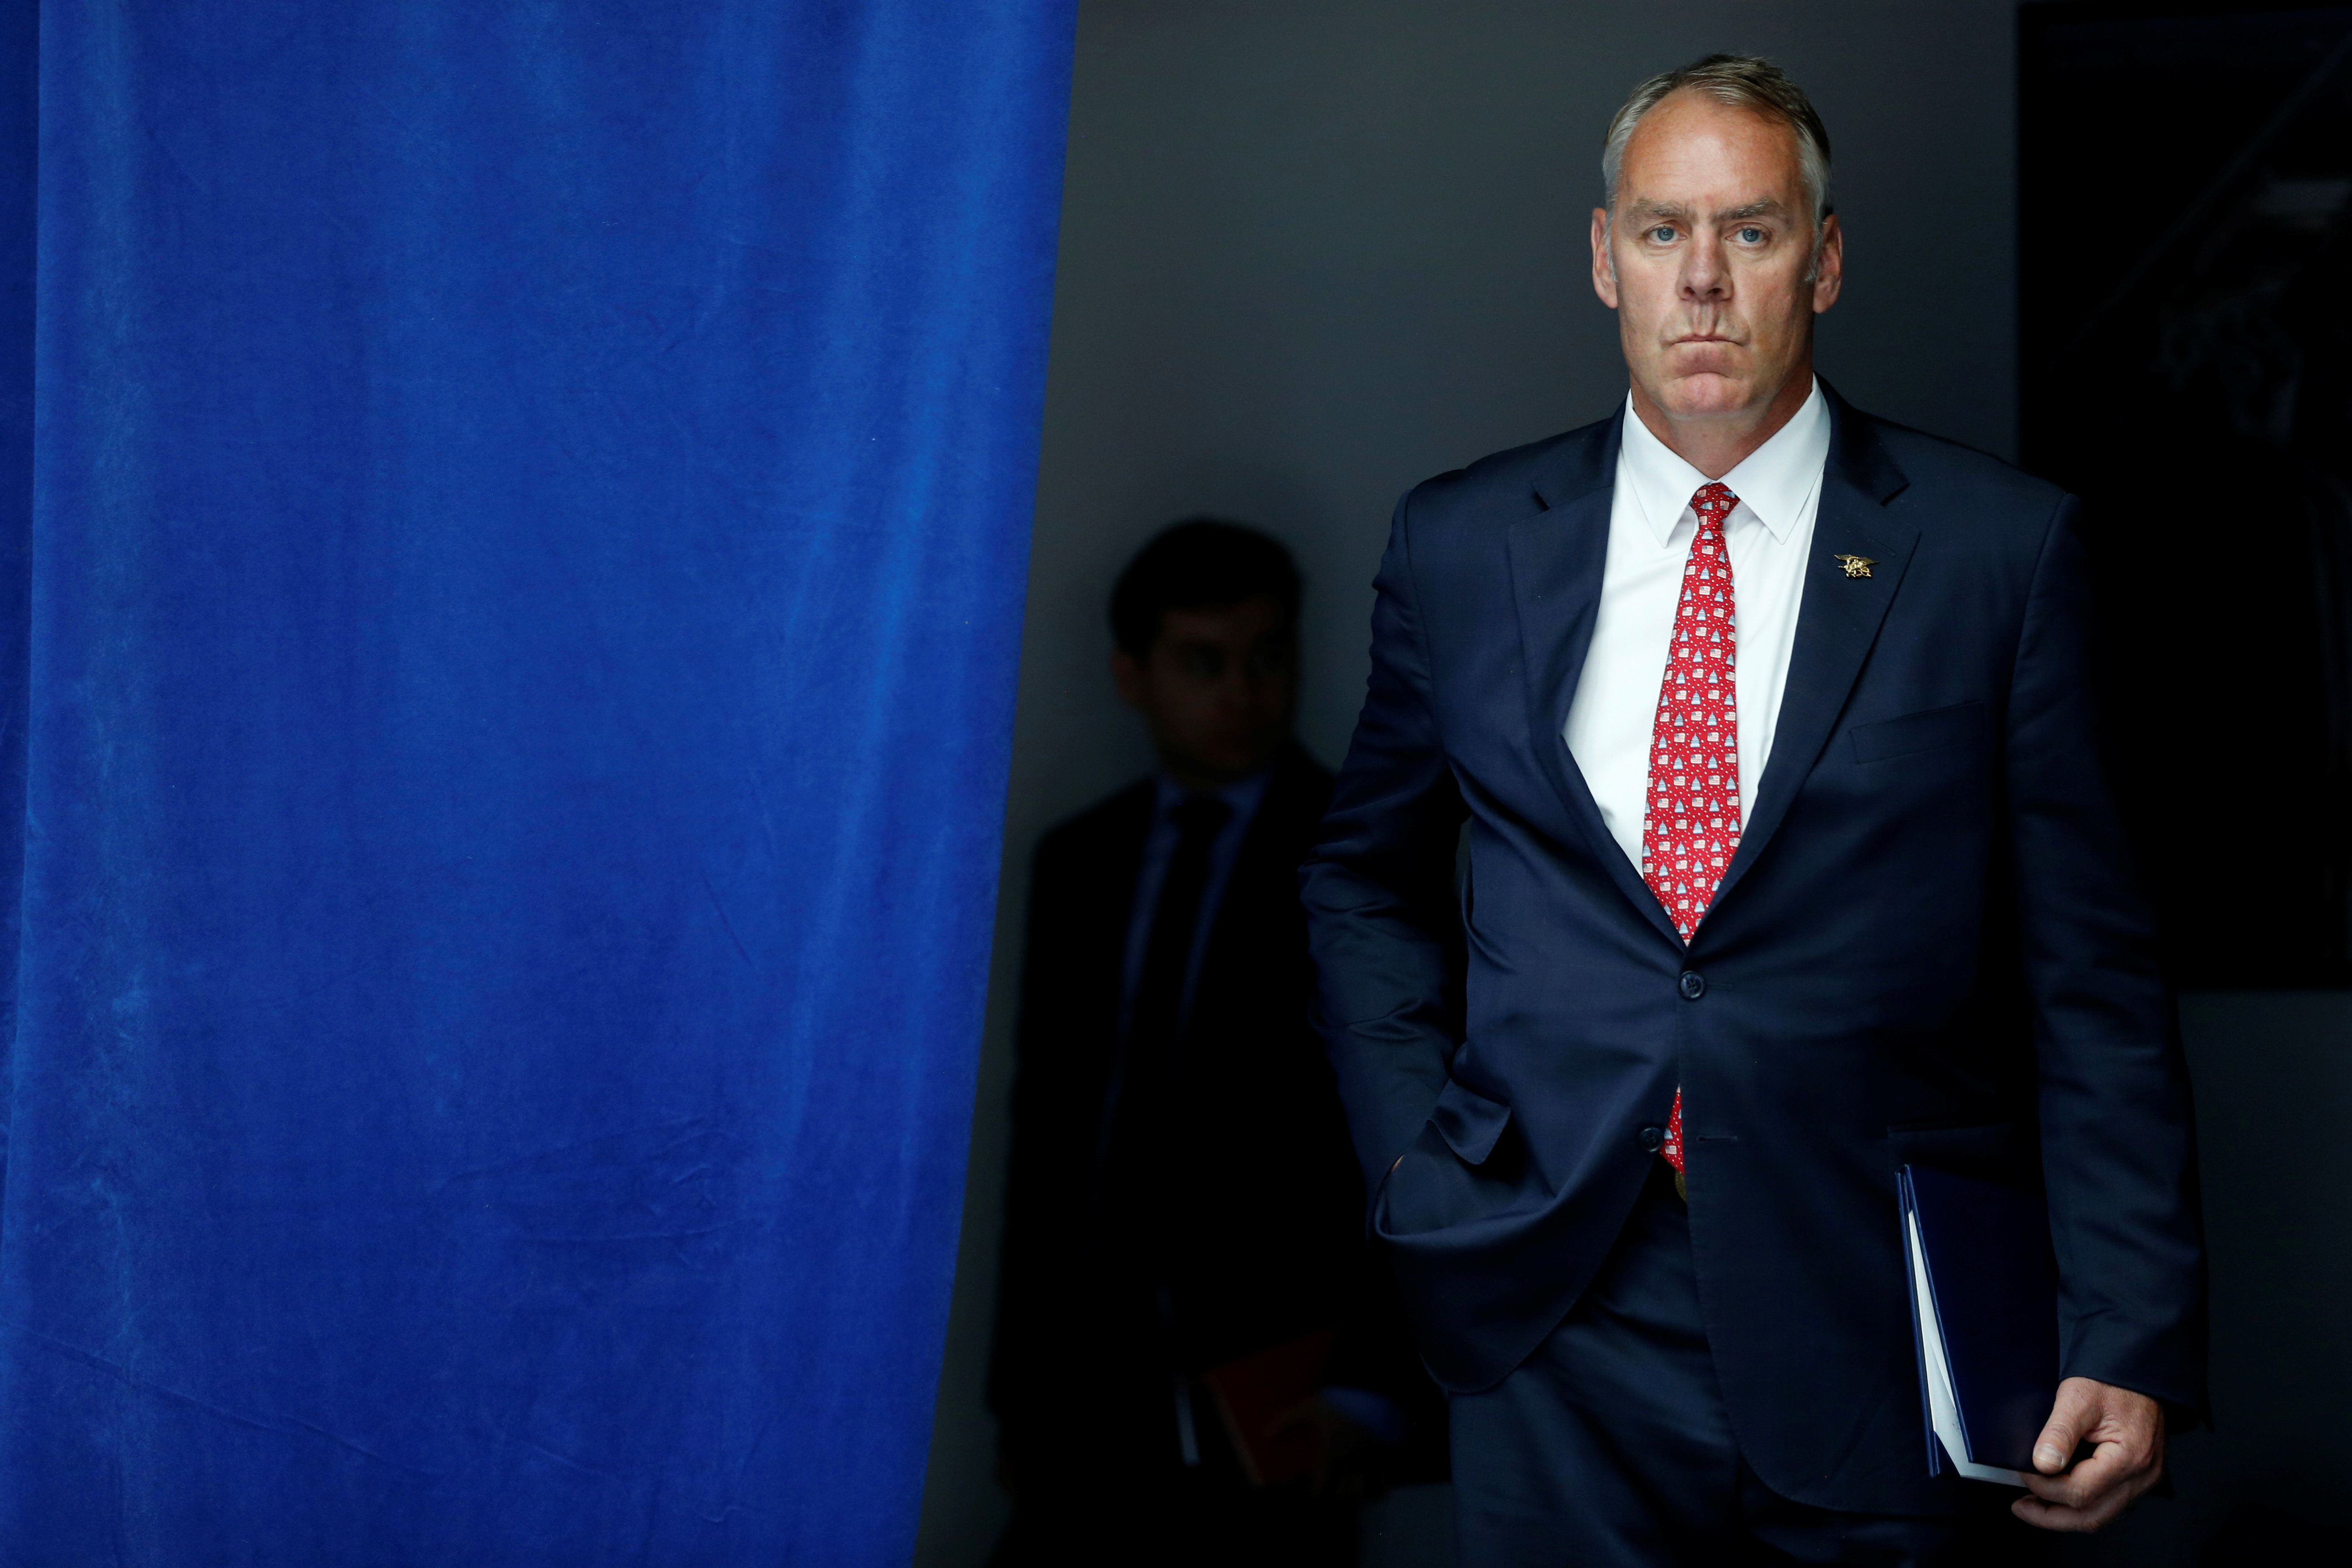 U.S. Interior Secretary Ryan Zinke waits to take the stage with President Trump for a speech on infrastructure in Washington,